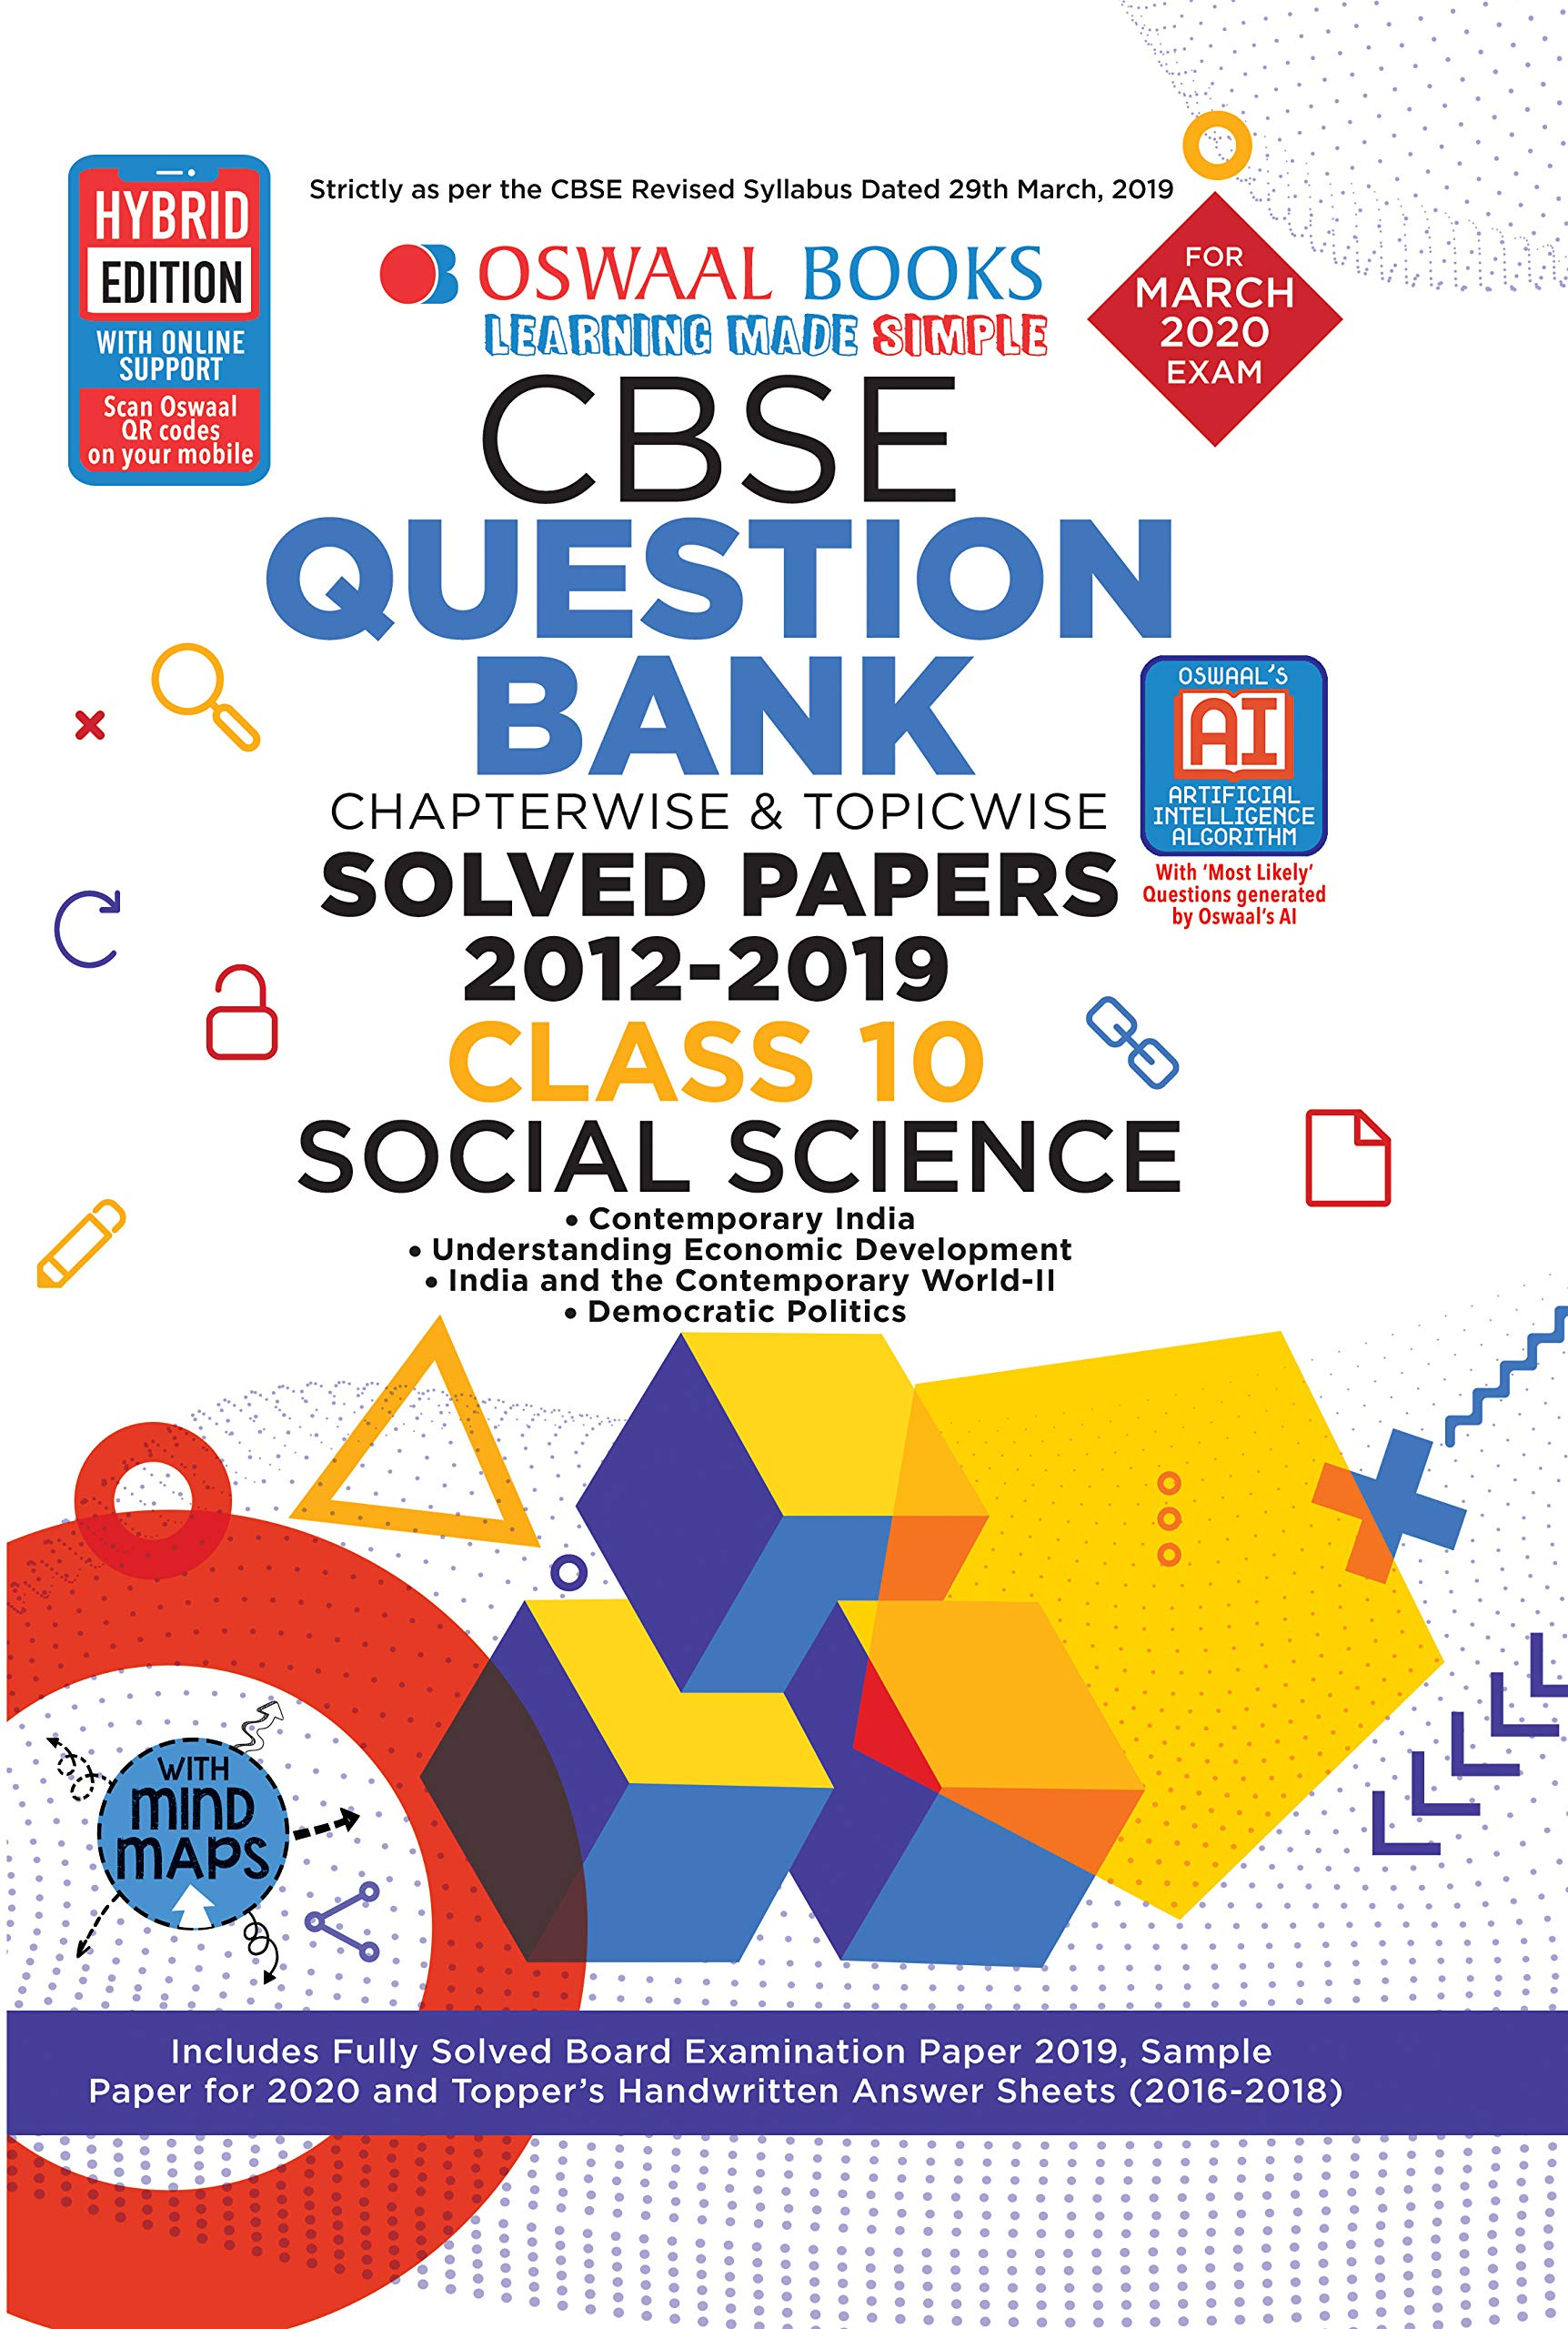 Oswaal CBSE Question Bank Class 10 Social Science Book Chapterwise & Topicwise Includes Objective Types & MCQ's (For March 2020 Exam) (9389067391) Amazon Price History, Amazon Price Tracker